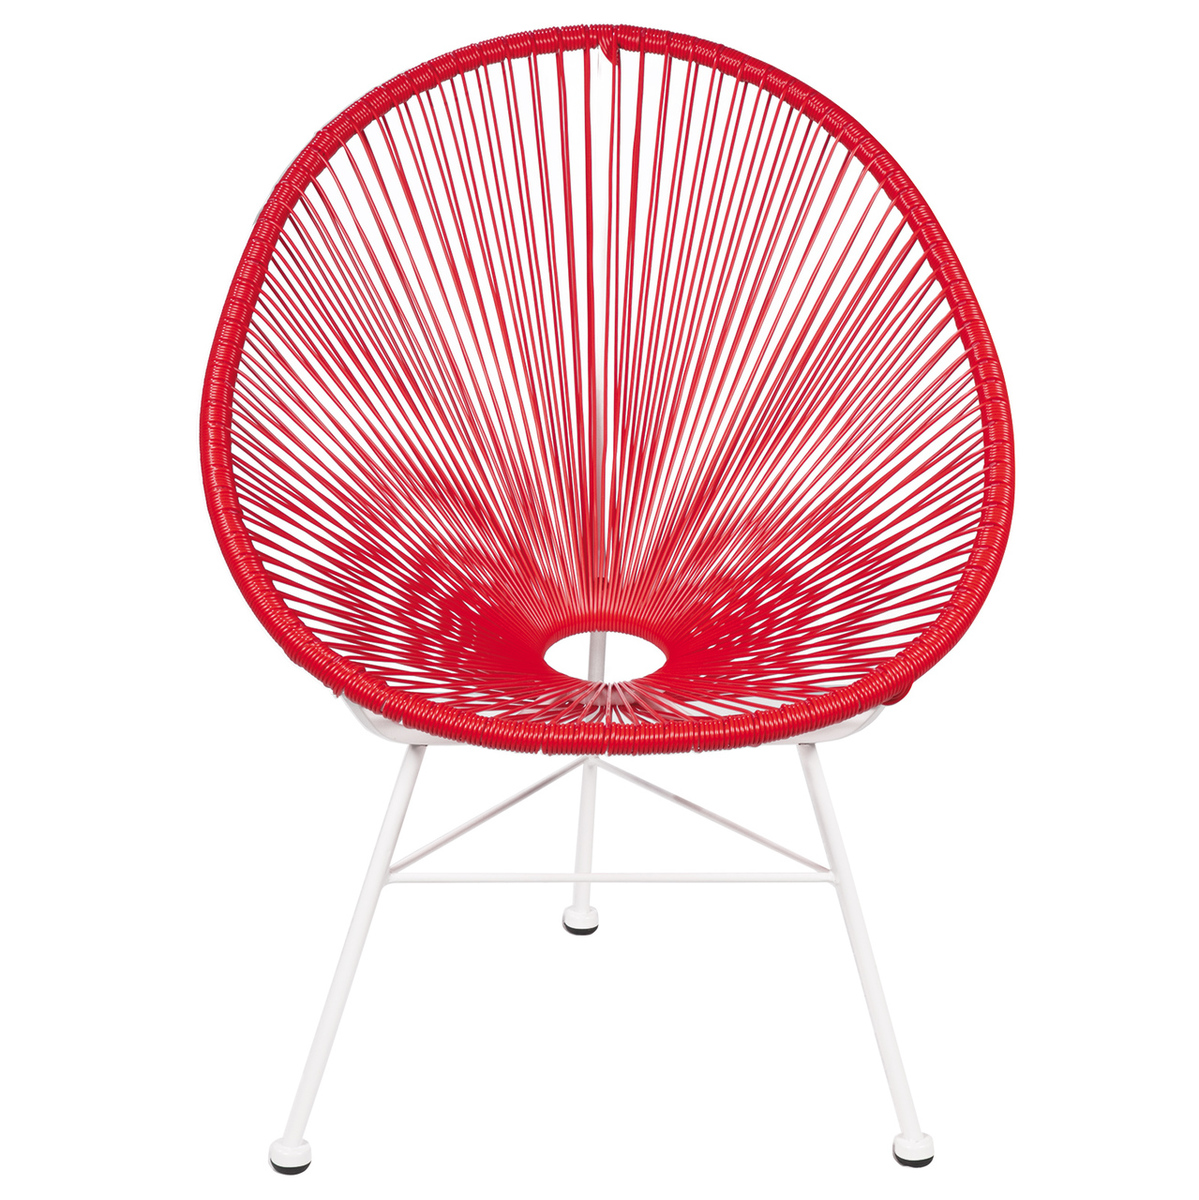 Acapulco Lounge Chair - Red on White